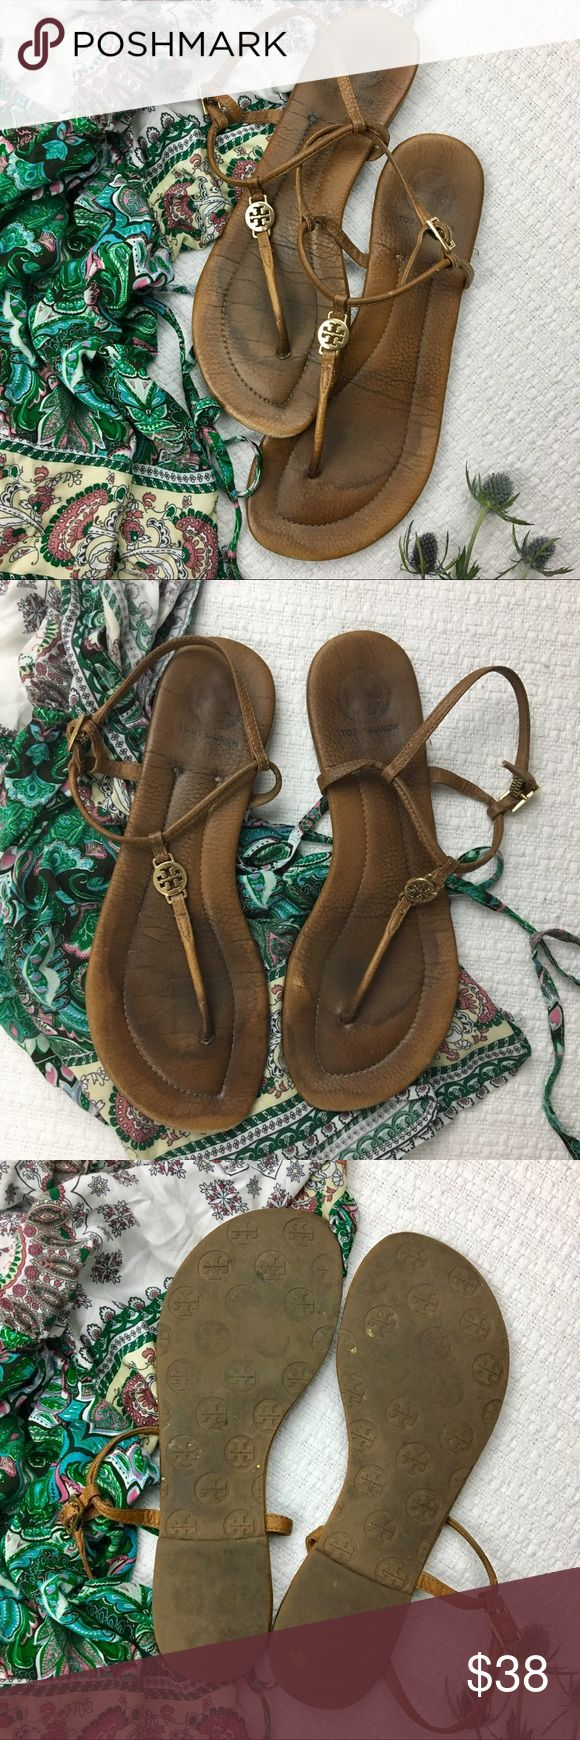 Tory Burch Emmy Thong Tan Sandals Tory Burch Emmy style Thong tan sandals. These adorable little sandals are a great neutral color to go with your entire closet! They are well loved but they still have a ton of life left! No rips or tears, the wear is only seen when the sandal is not on 😊 Tory Burch Shoes Sandals